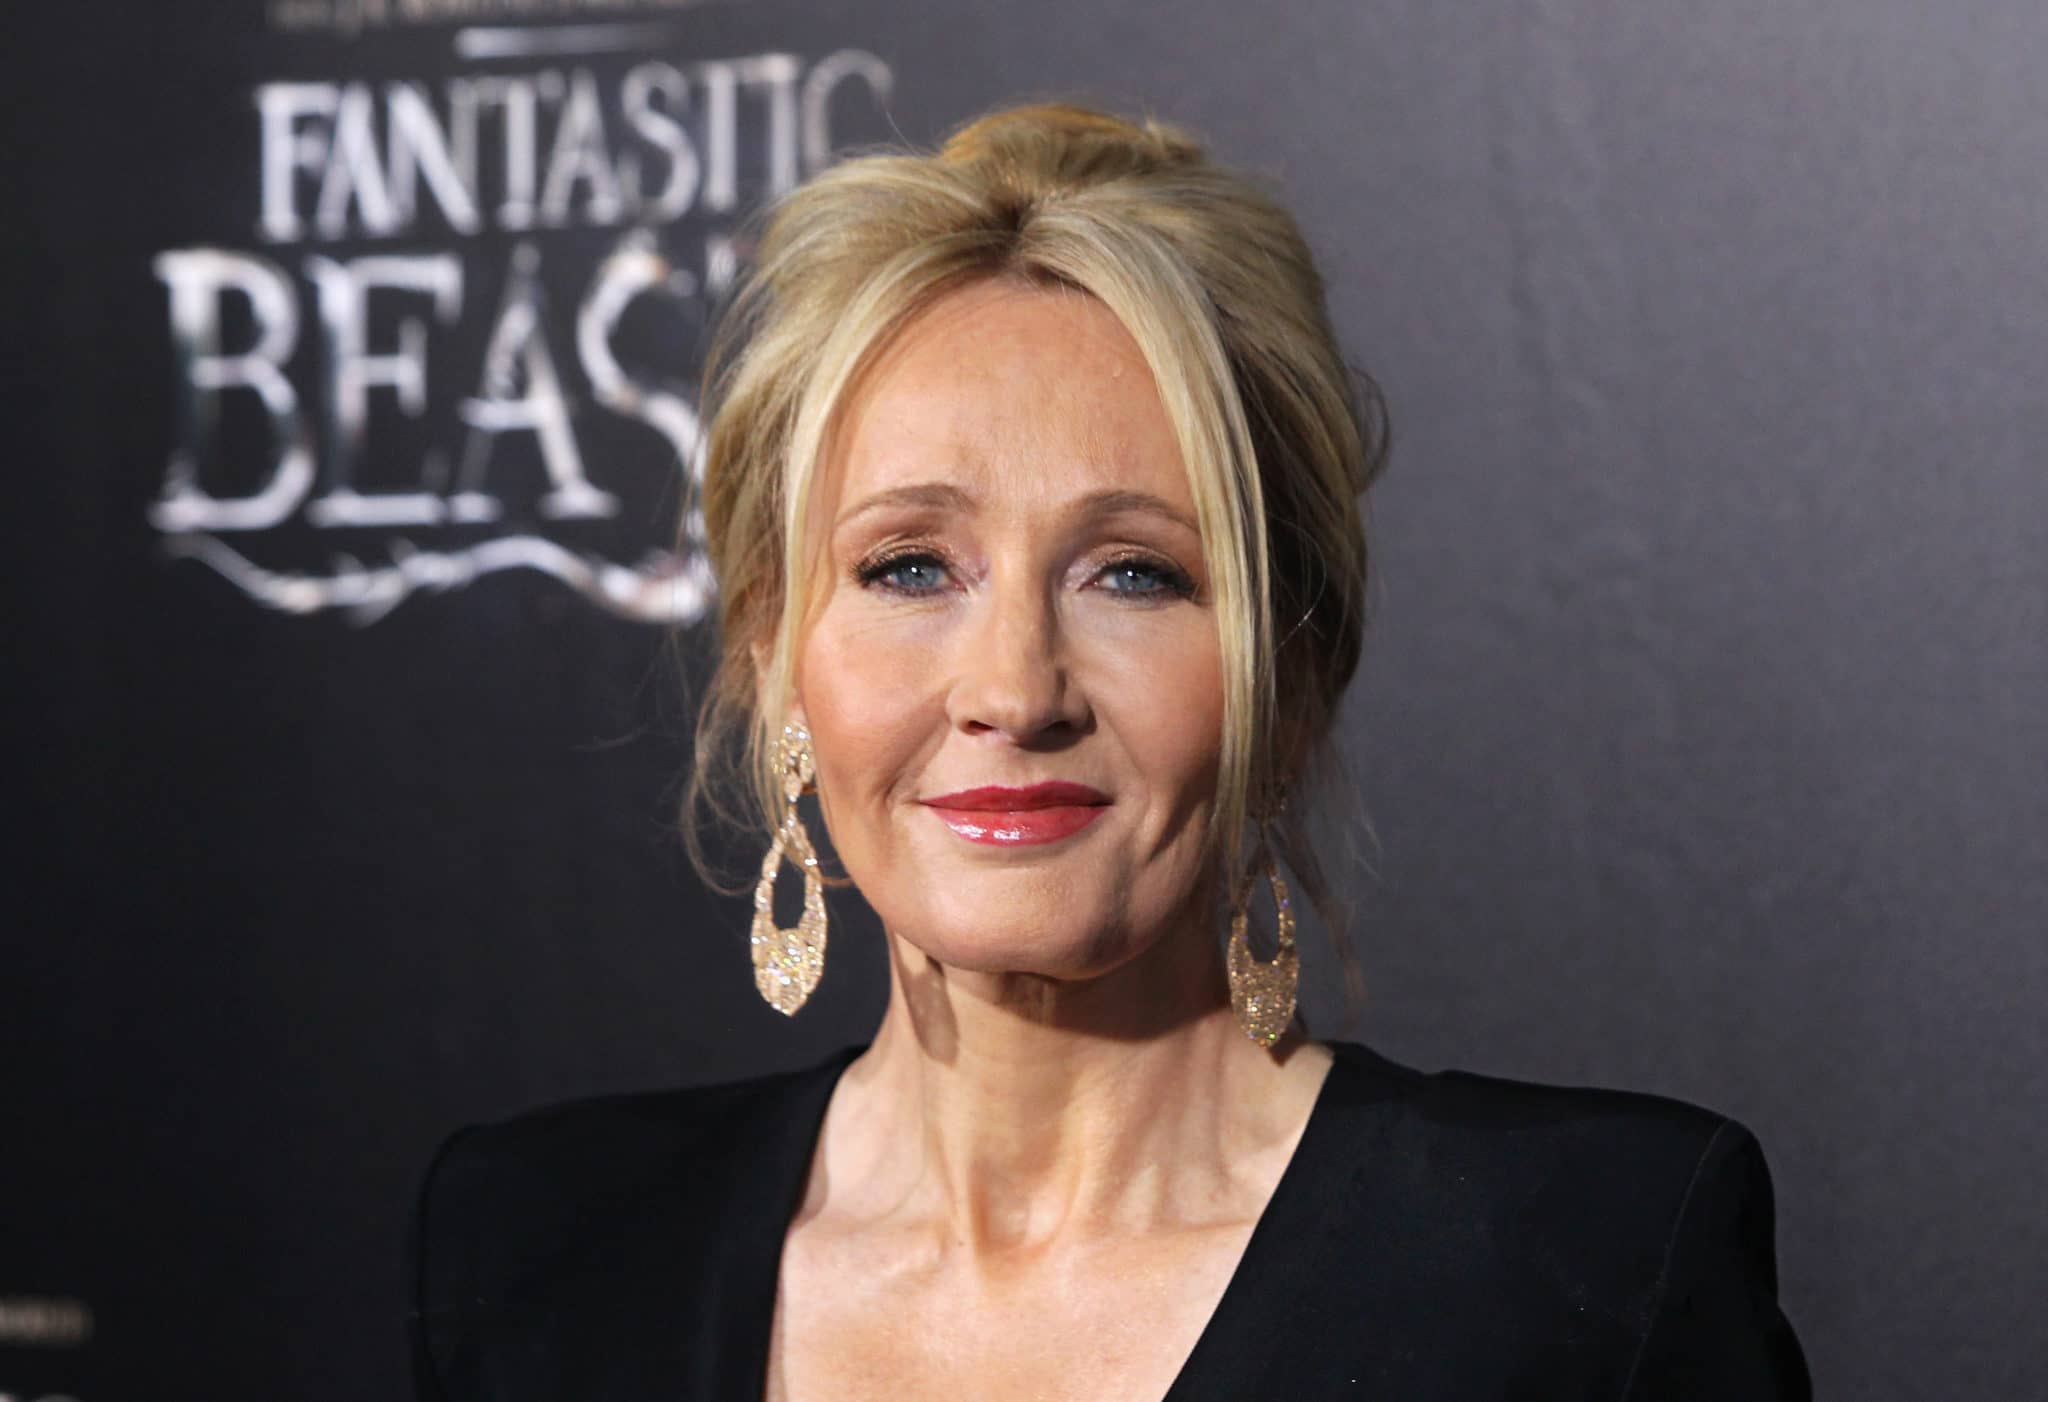 Harry Potter author JK Rowling attends the Fantastic Beasts And Where To Find Them premiere in 2016